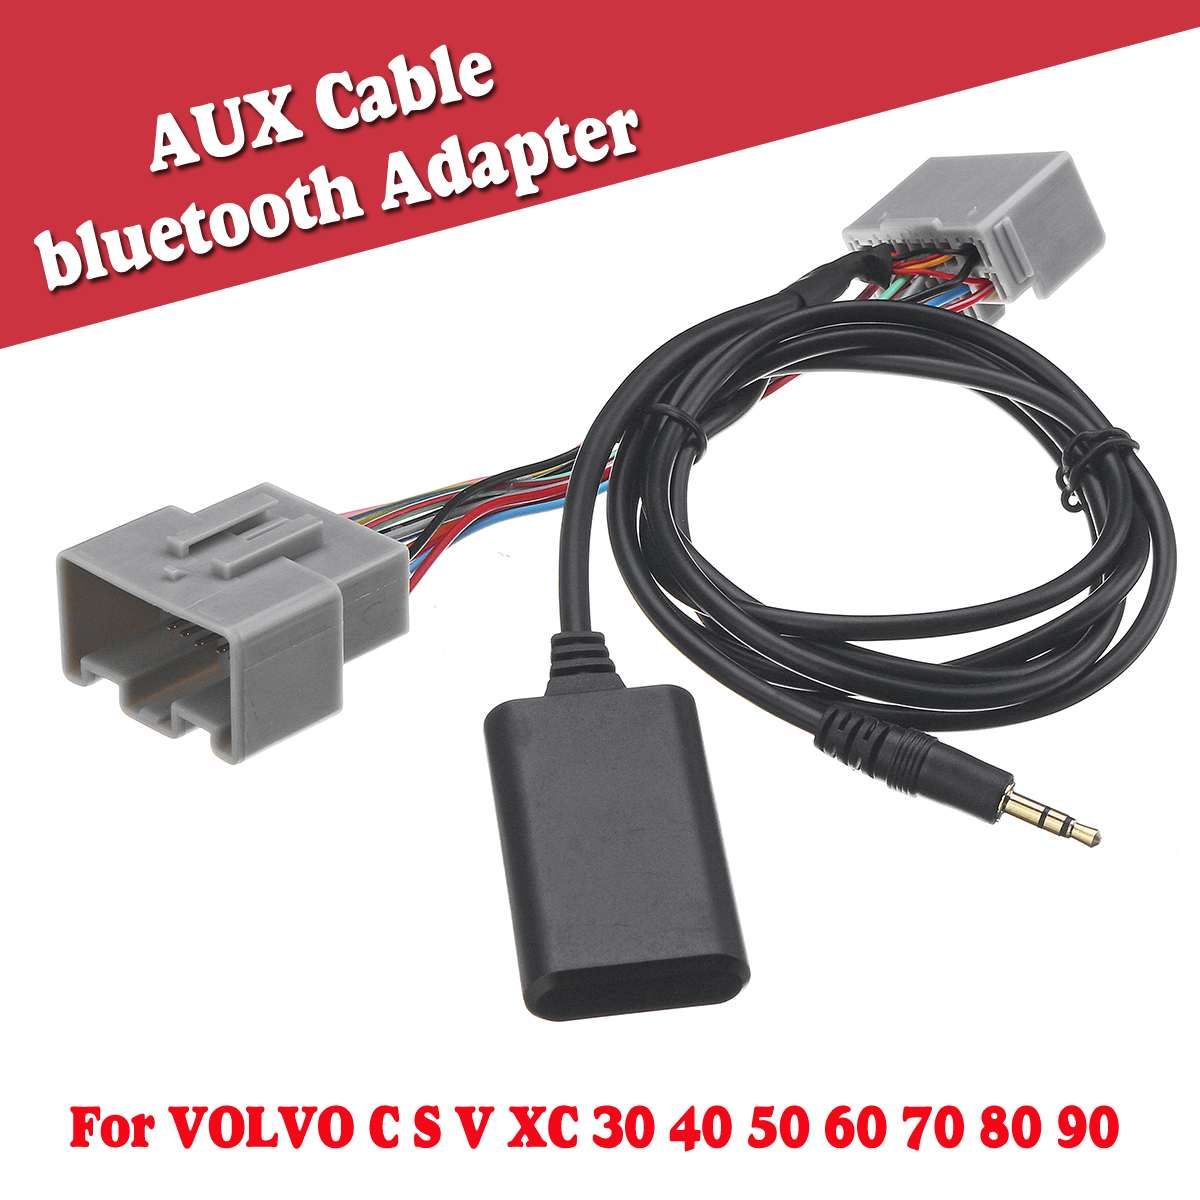 Car bluetooth Adapter AUX Audio Radio Receiver Cable for <font><b>VOLVO</b></font> C S V <font><b>XC</b></font> 30 40 50 60 70 80 <font><b>90</b></font> image